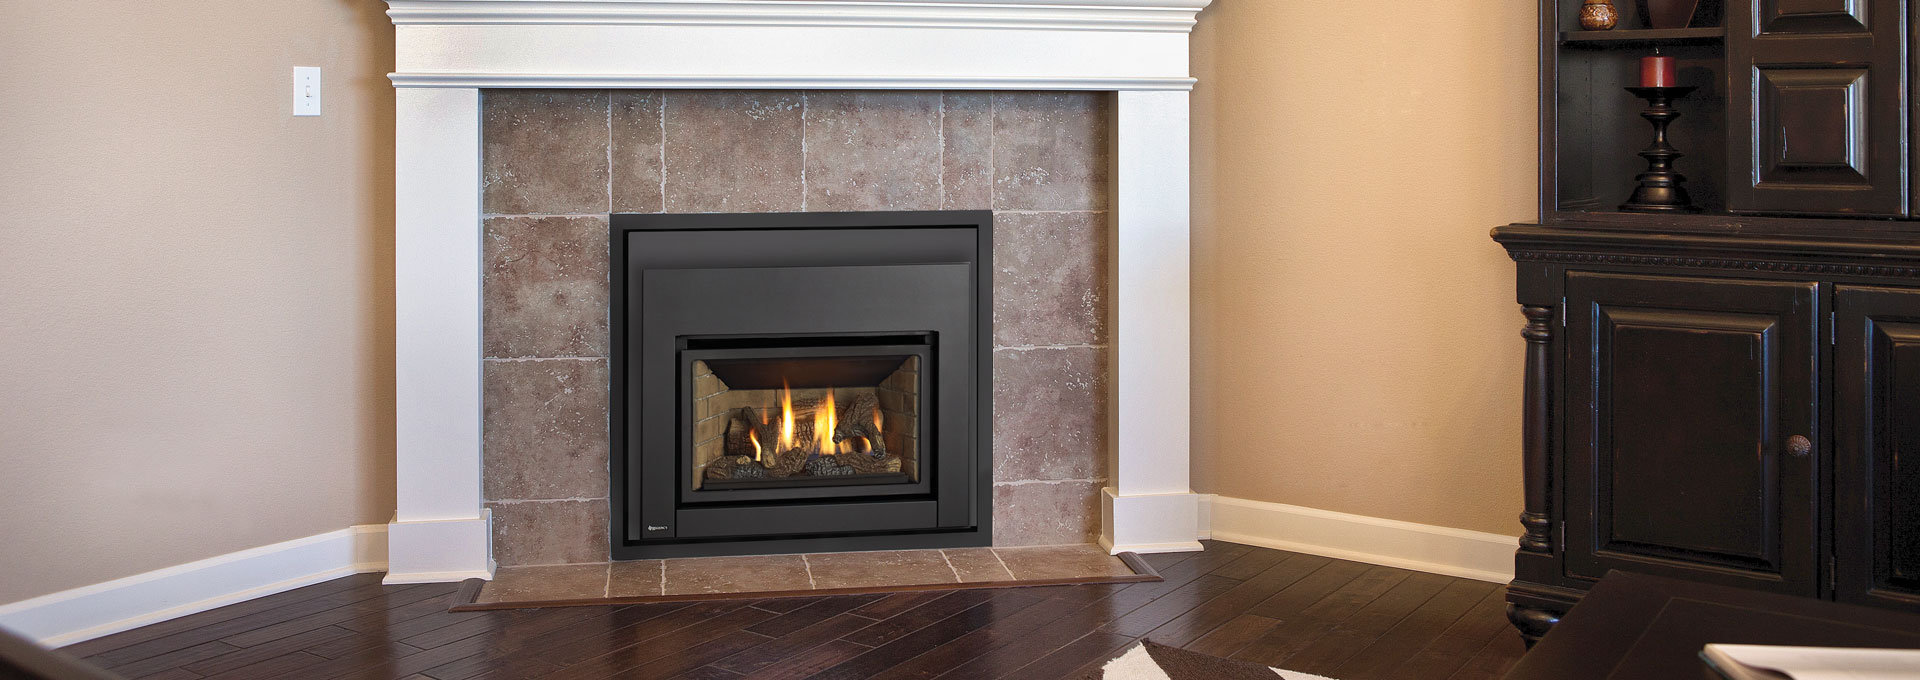 pict f gas vs for amazing issue direct b vent fireplace stunning inspiration and exhaust chimney styles standing venting complex a awesome proper clearance